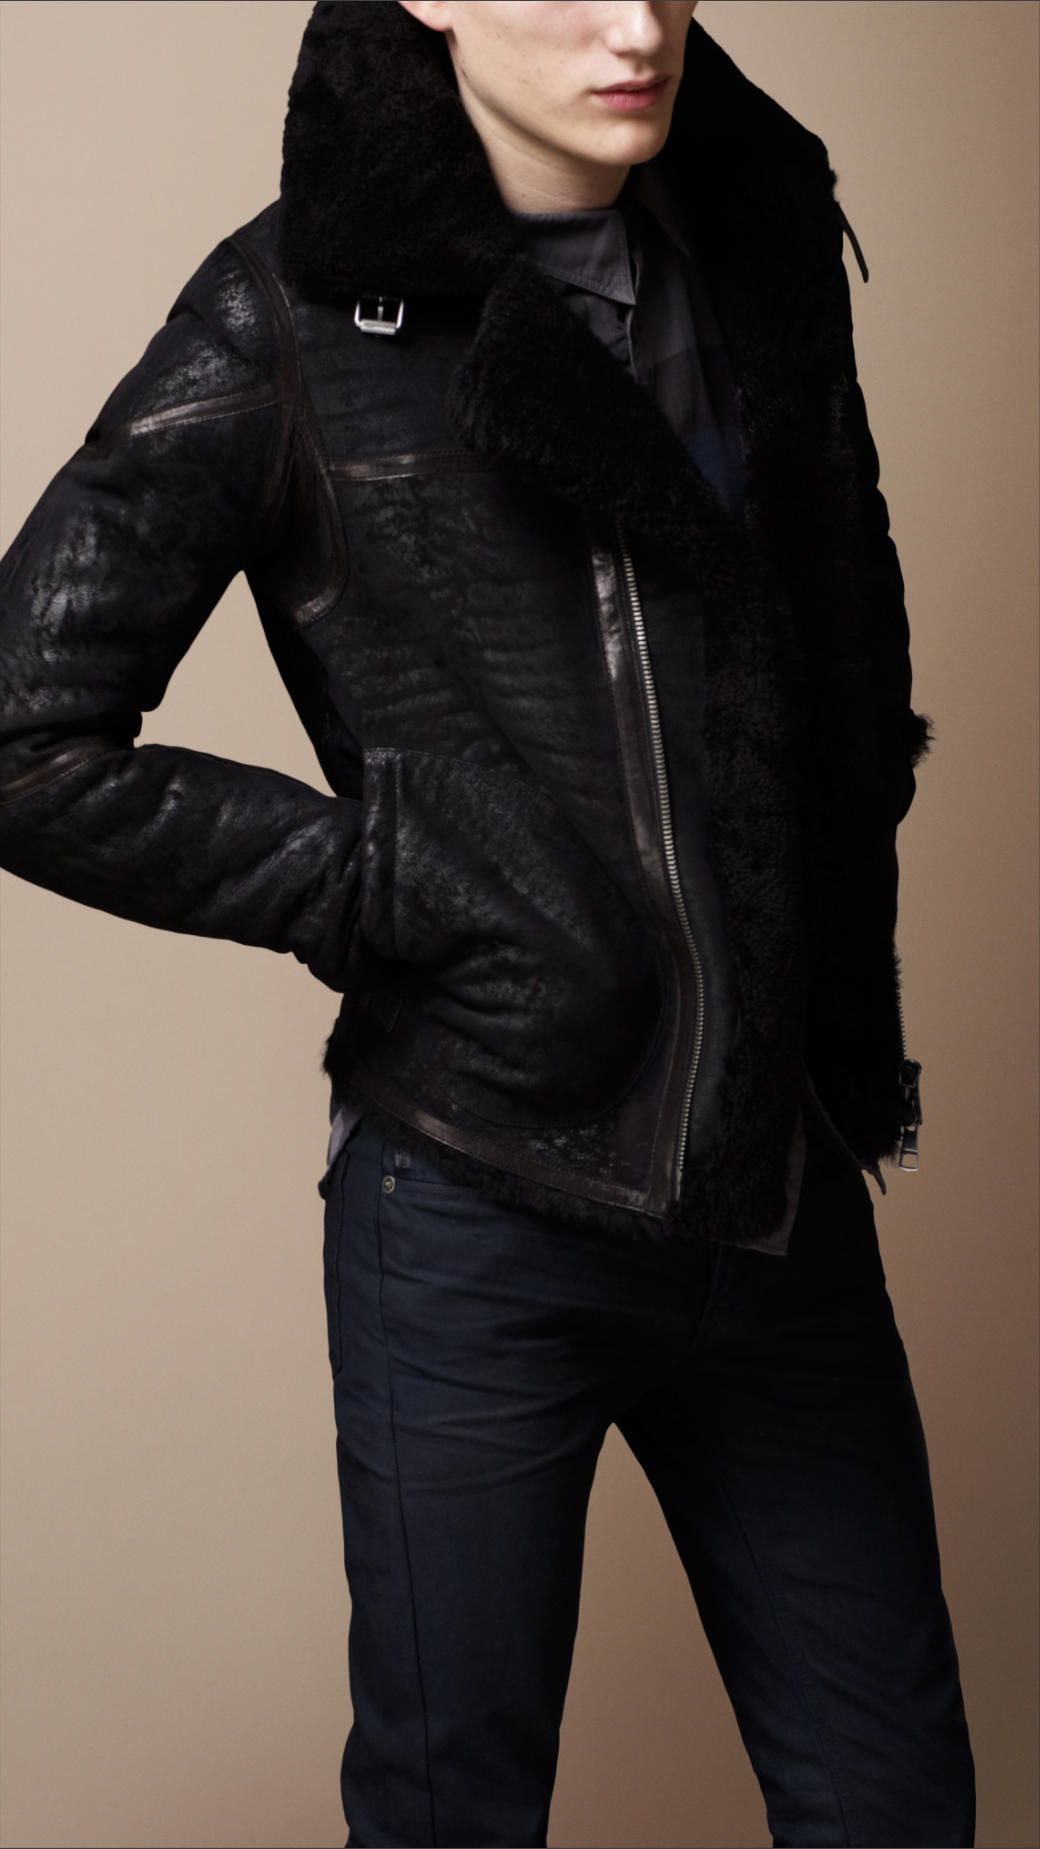 lyst burberry brit shearling biker jacket in black for men. Black Bedroom Furniture Sets. Home Design Ideas